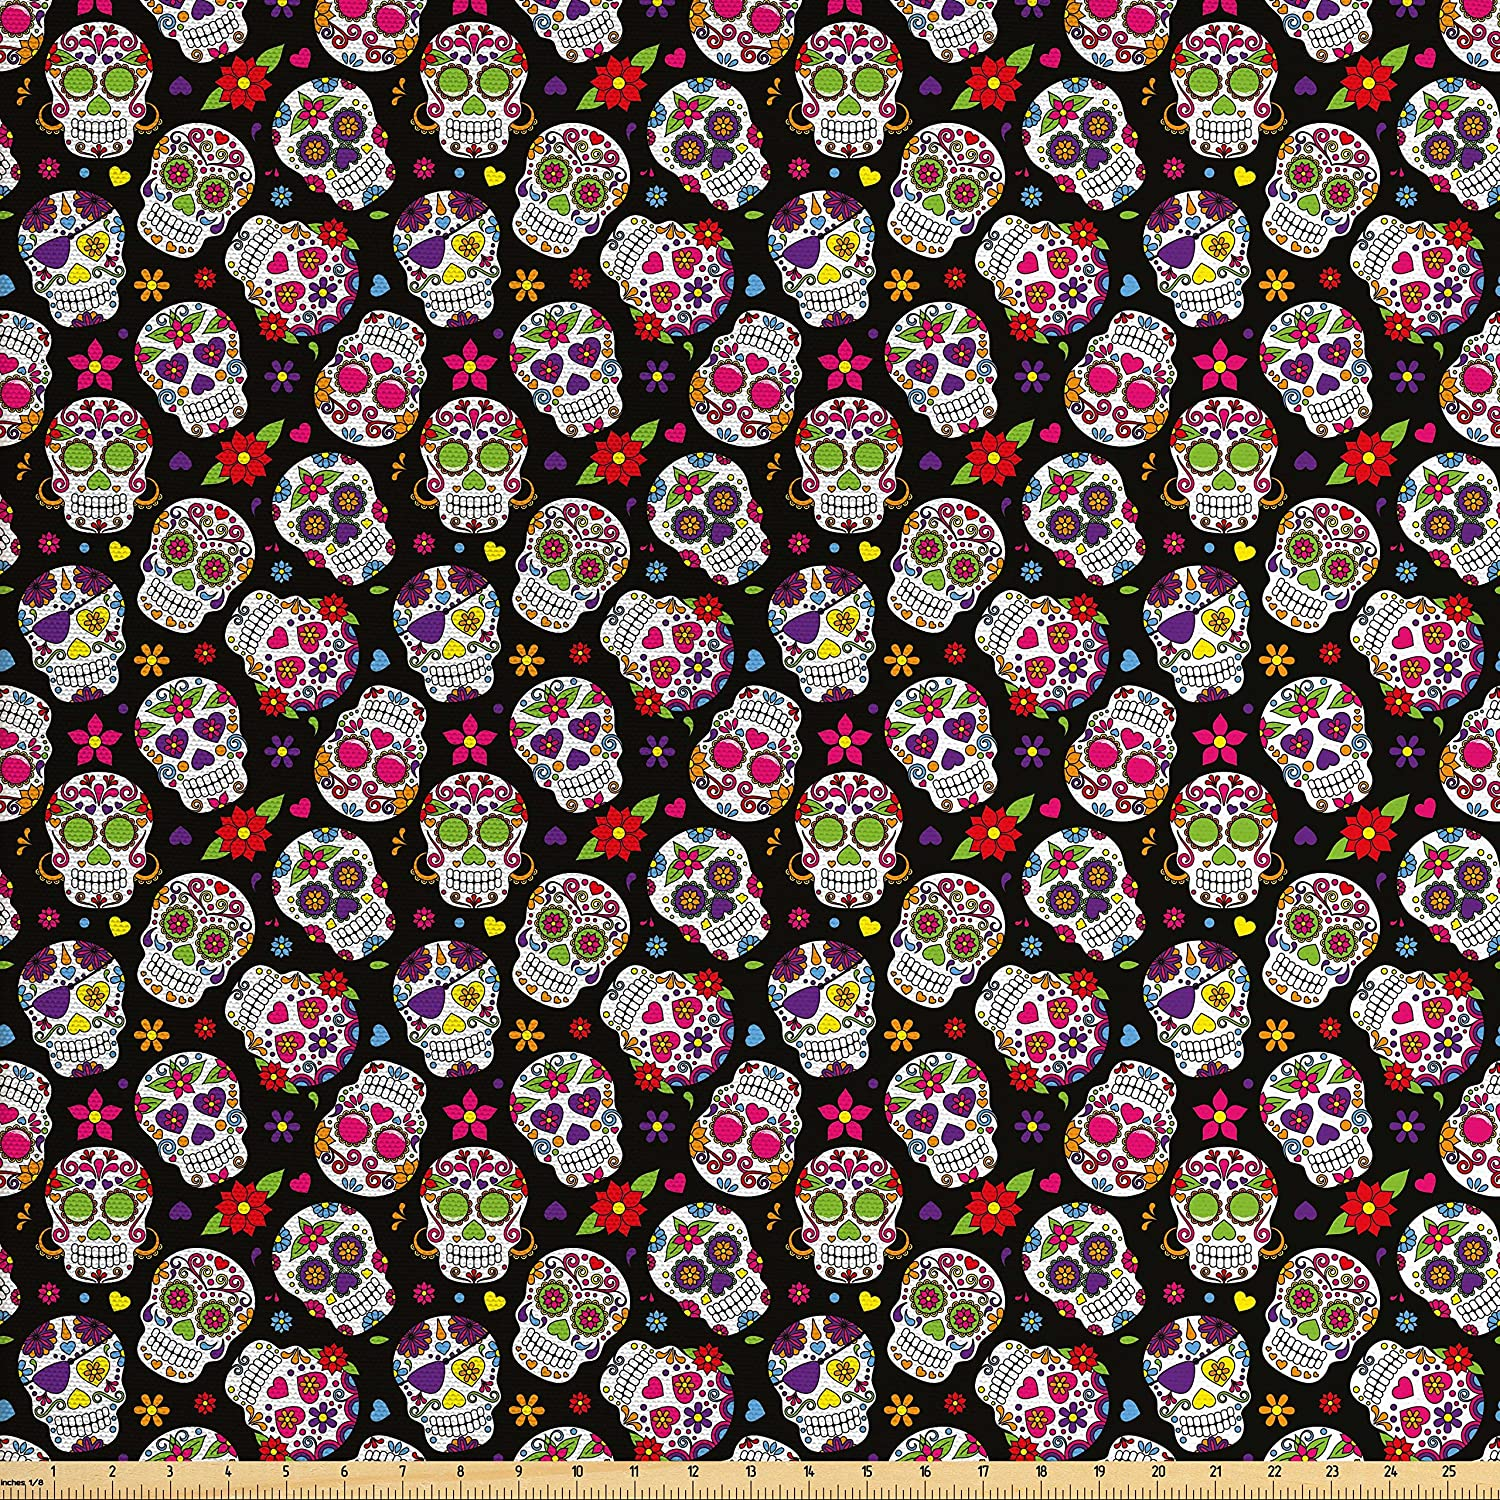 Ambesonne Sugar Skull Fabric by The Yard, Graveyard Mexico Design on Black Backdrop Print, Decorative Fabric for Upholstery and Home Accents, Multicolor